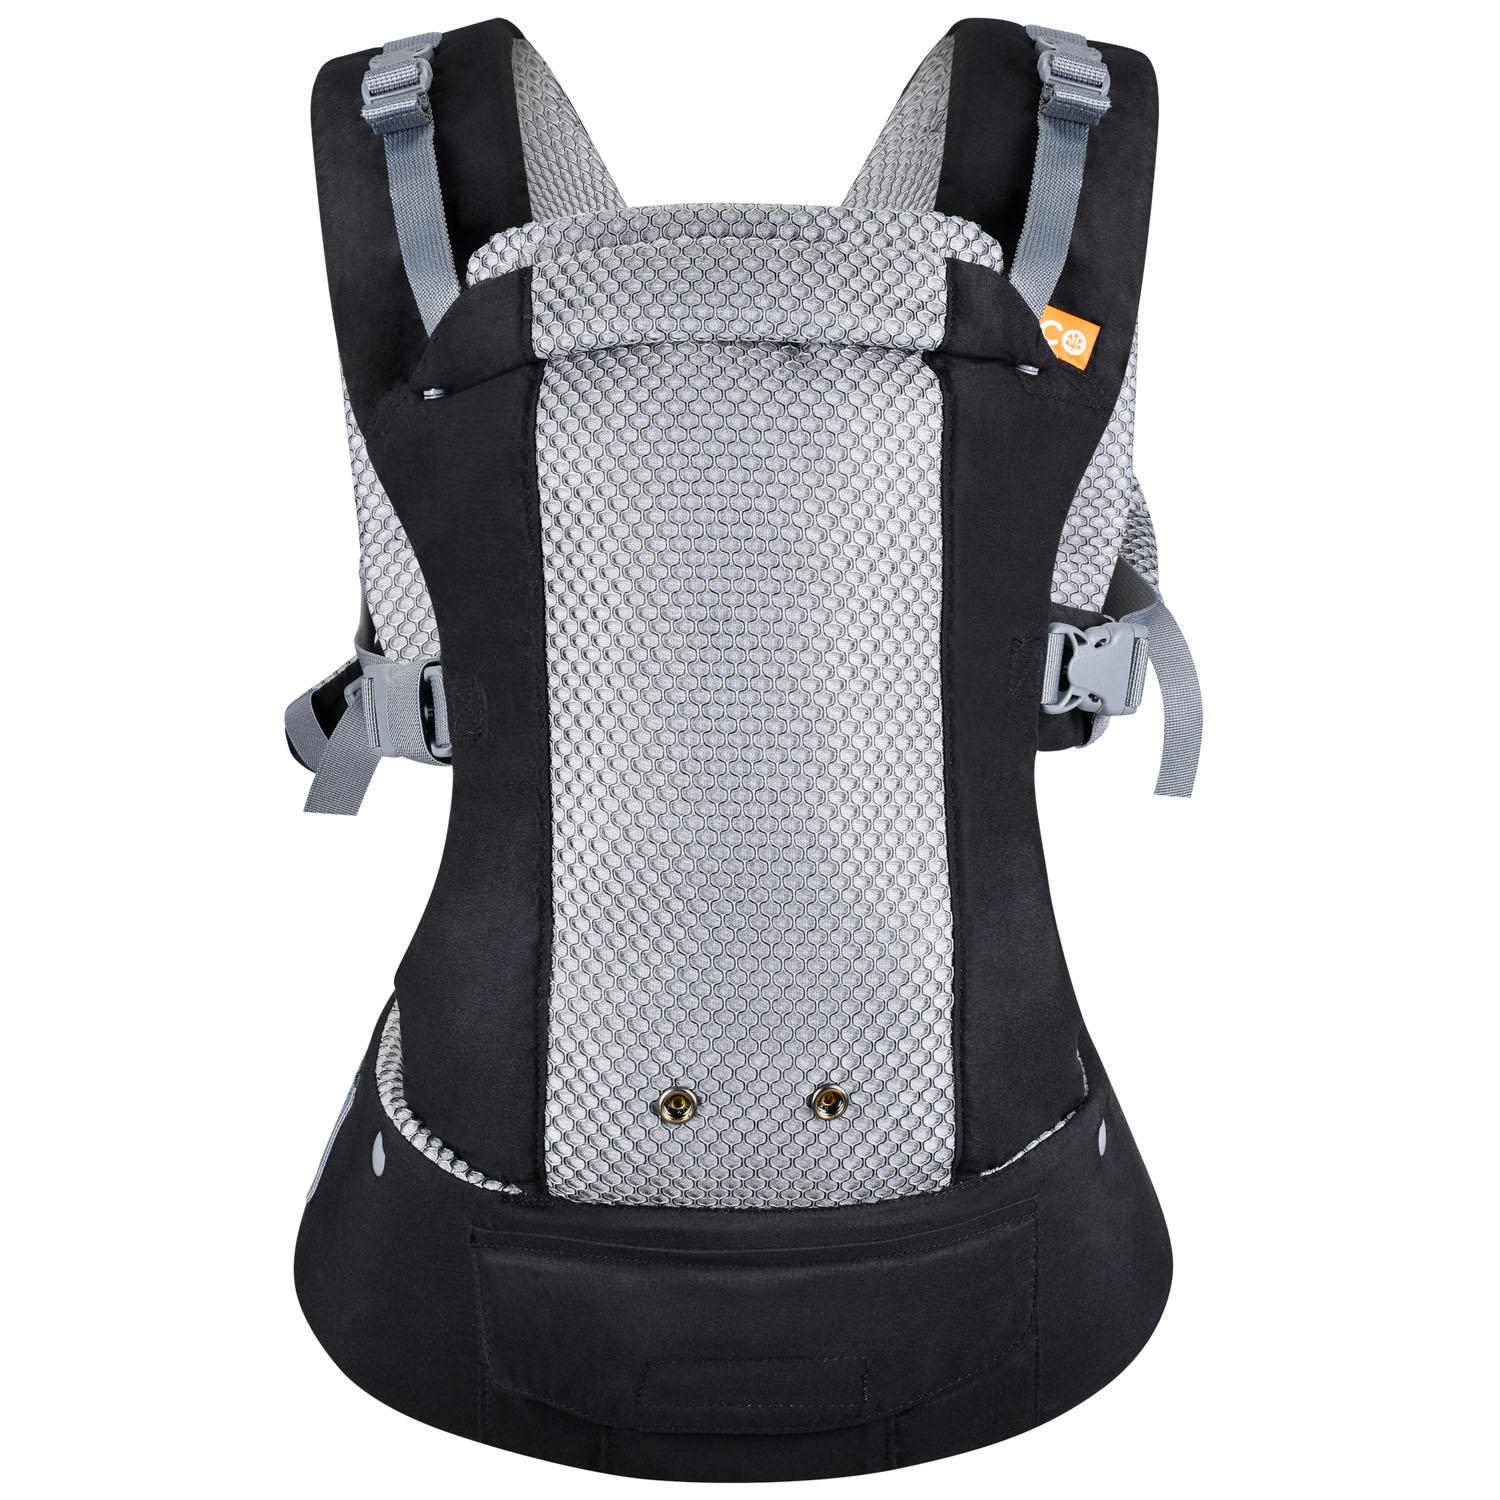 Beco Baby Gemini Cool Carrier (Choose Your Color)